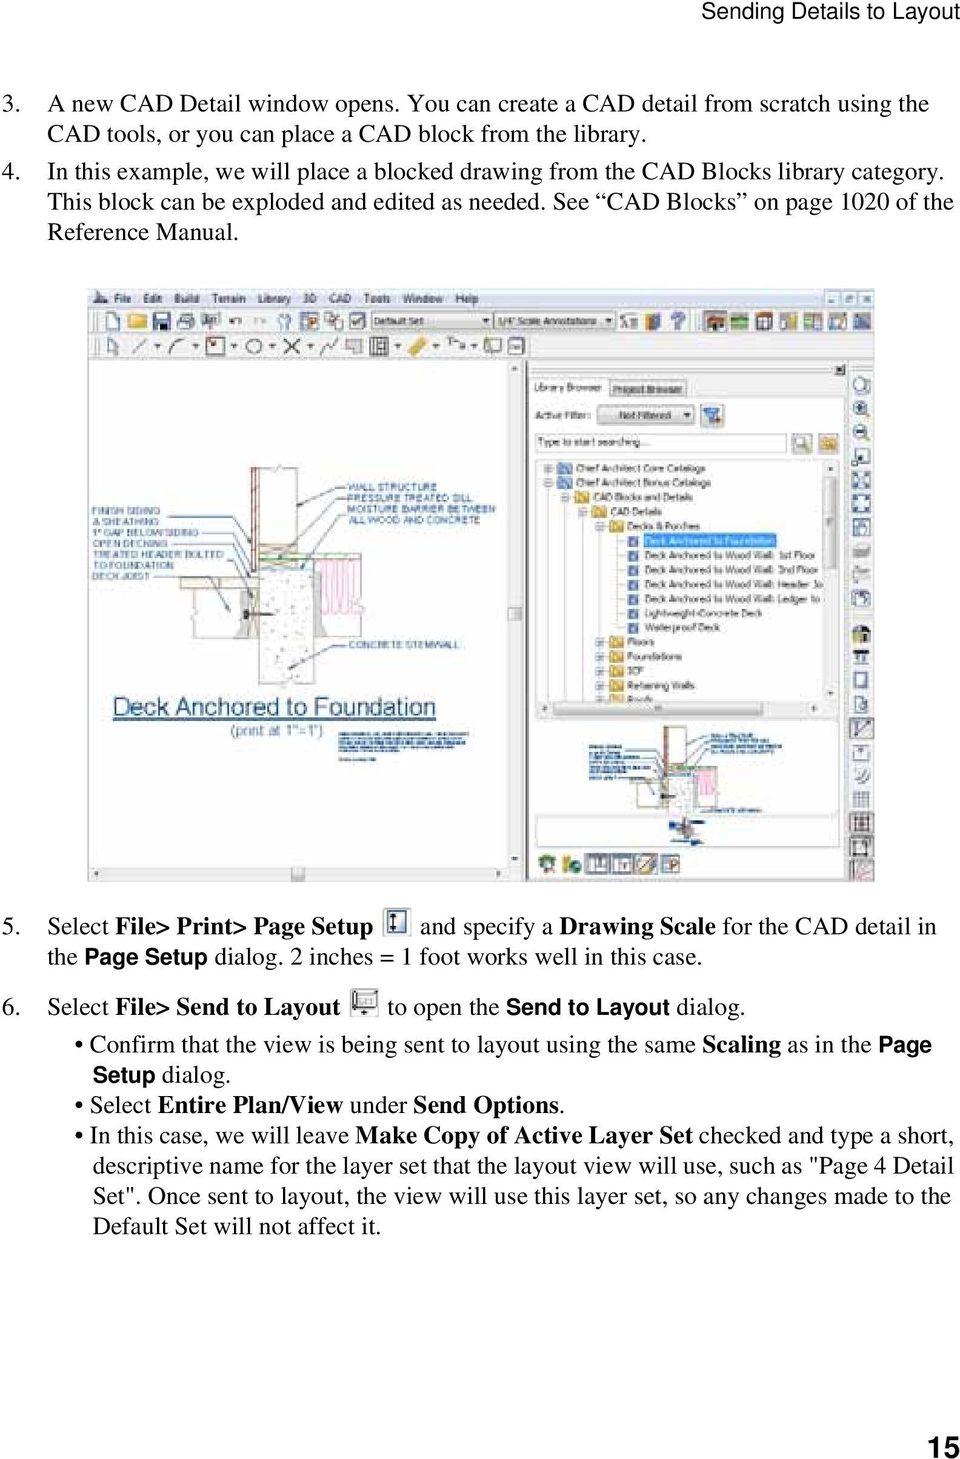 Select File> Print> Page Setup and specify a Drawing Scale for the CAD detail in the Page Setup dialog. 2 inches = 1 foot works well in this case. 6.